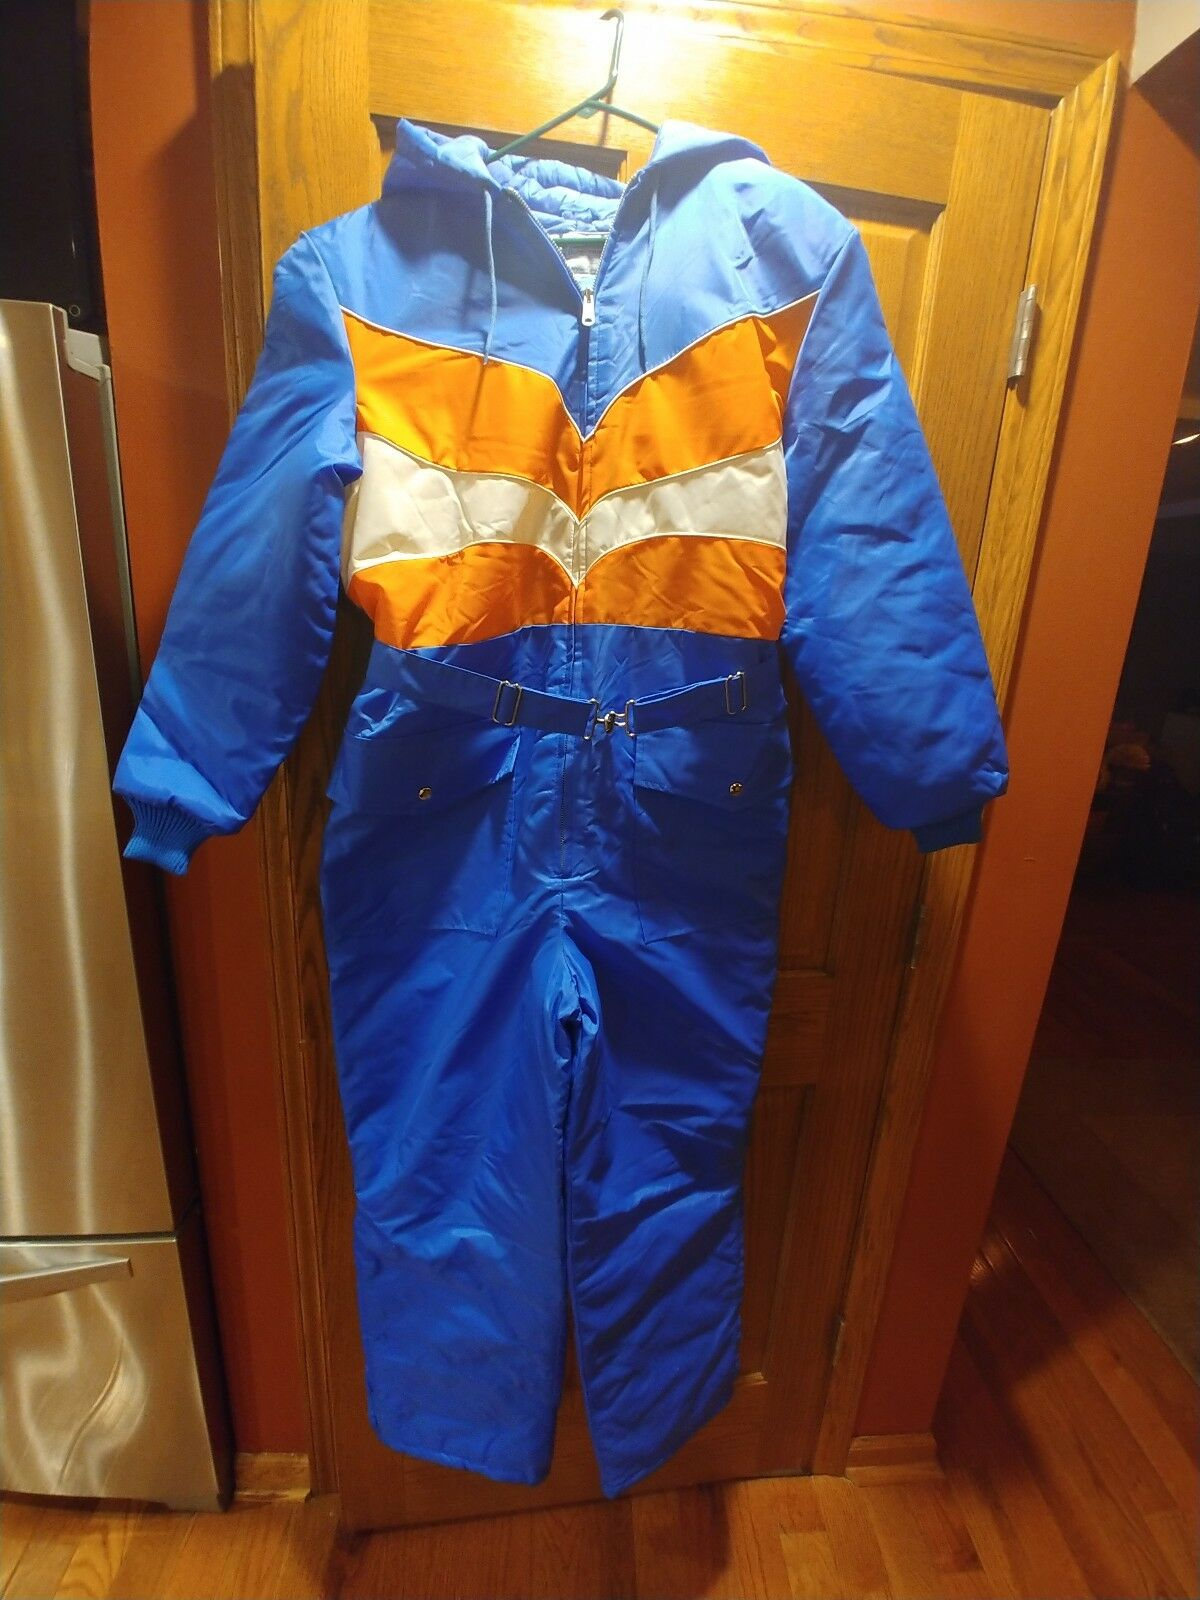 Vtg 80s SUIT SKI SUIT 80s One piece FULL ZIP Snow Bib Snowsuit Größe 20 Orange Blau Weiß 5d7a27